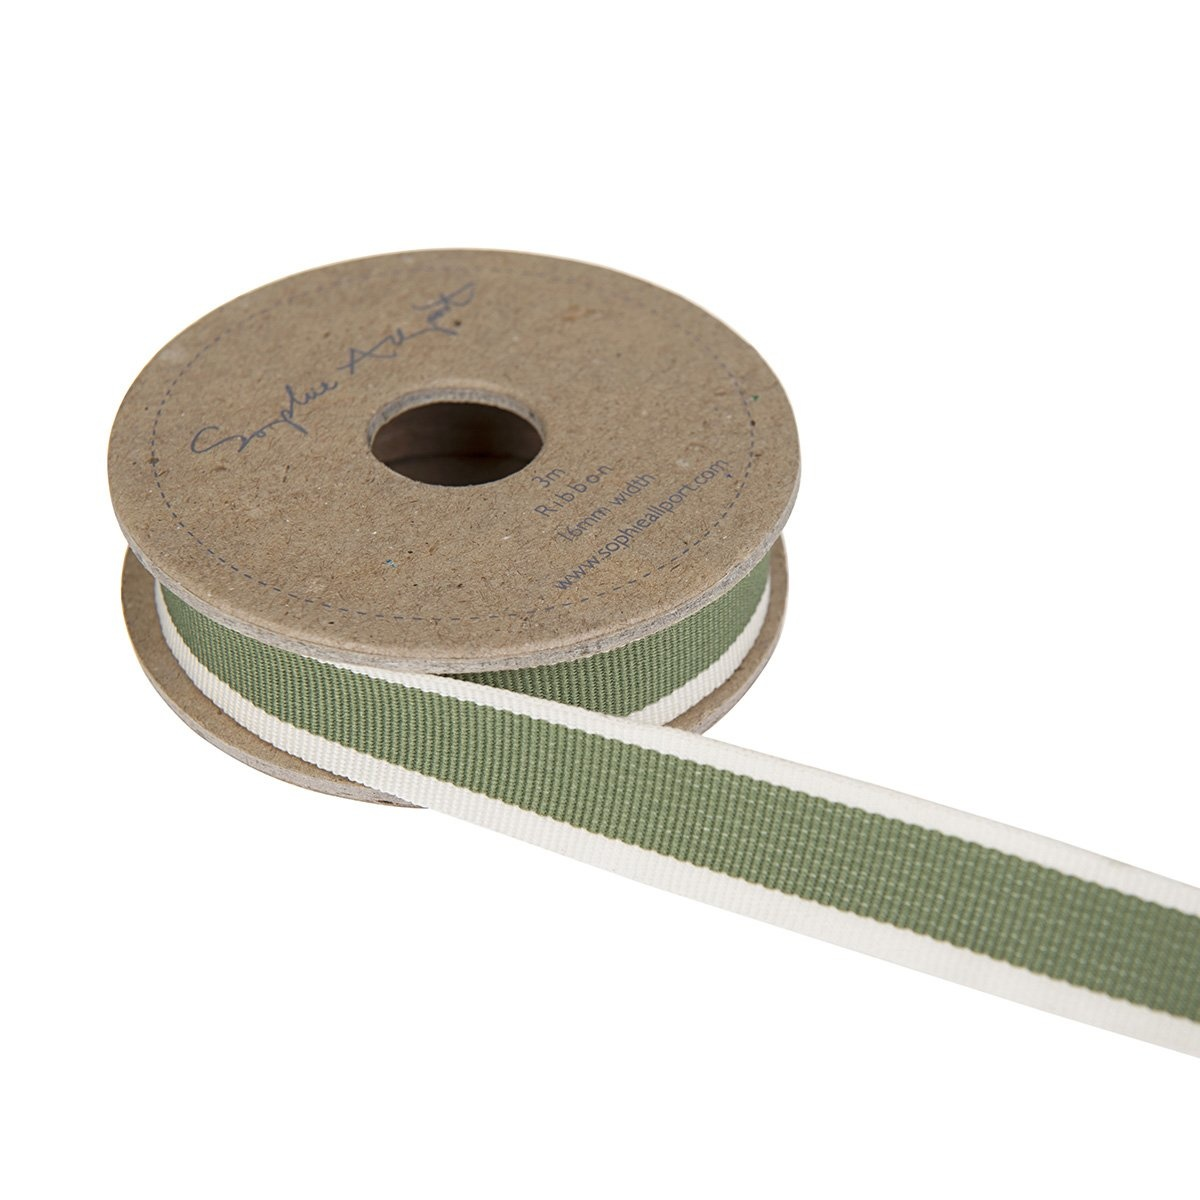 Sophie Allport Ribbon On Spool Leaf Green Stripe